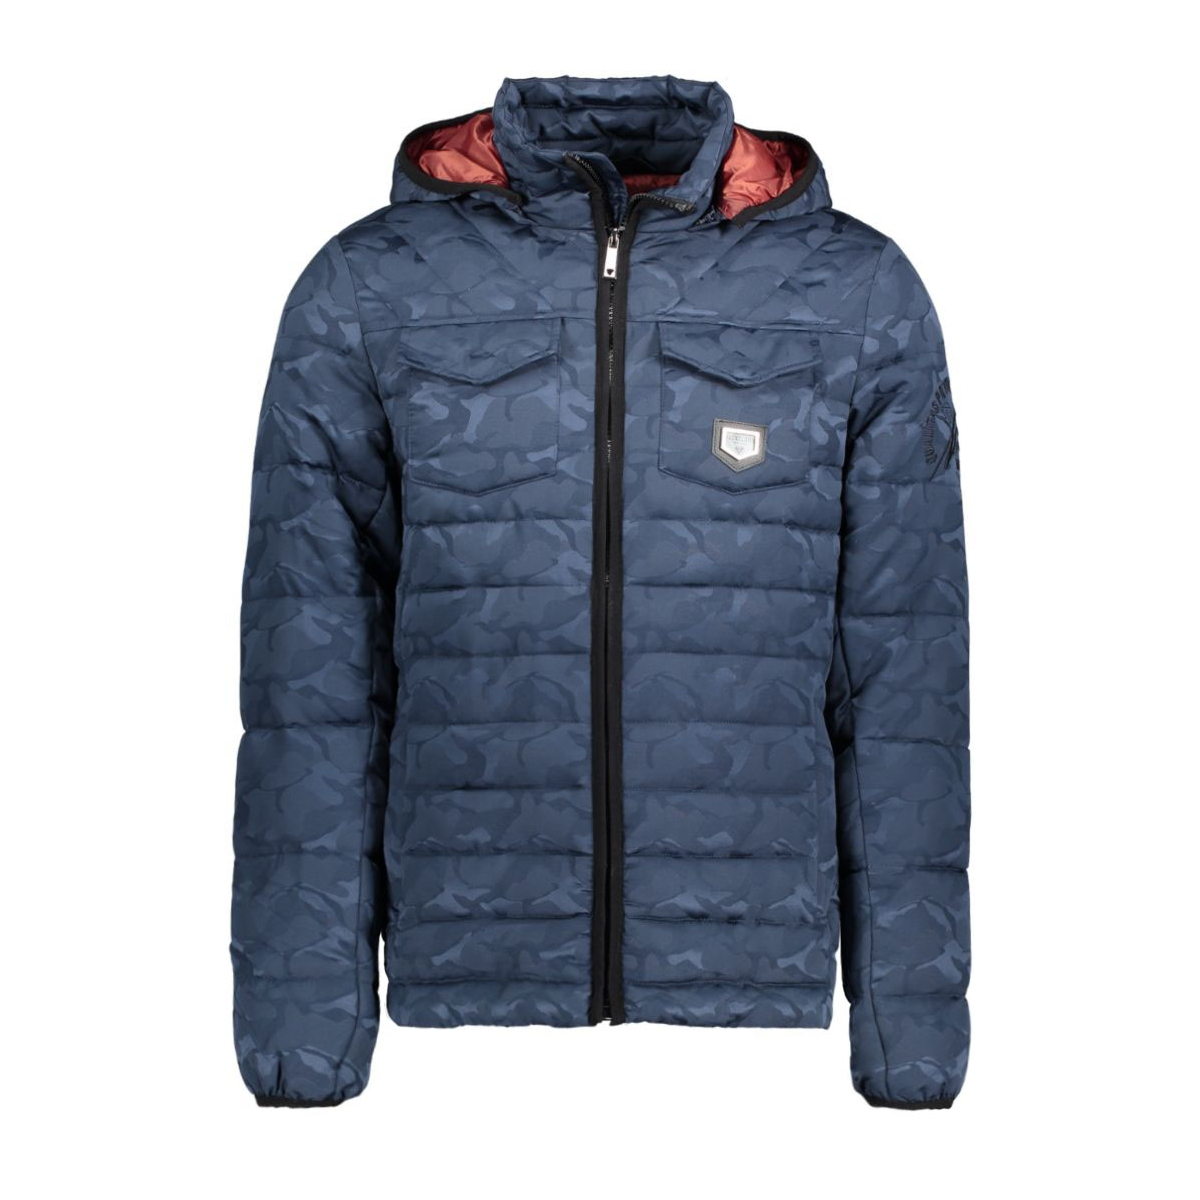 1650101070 pack nickelson jas 117/navy